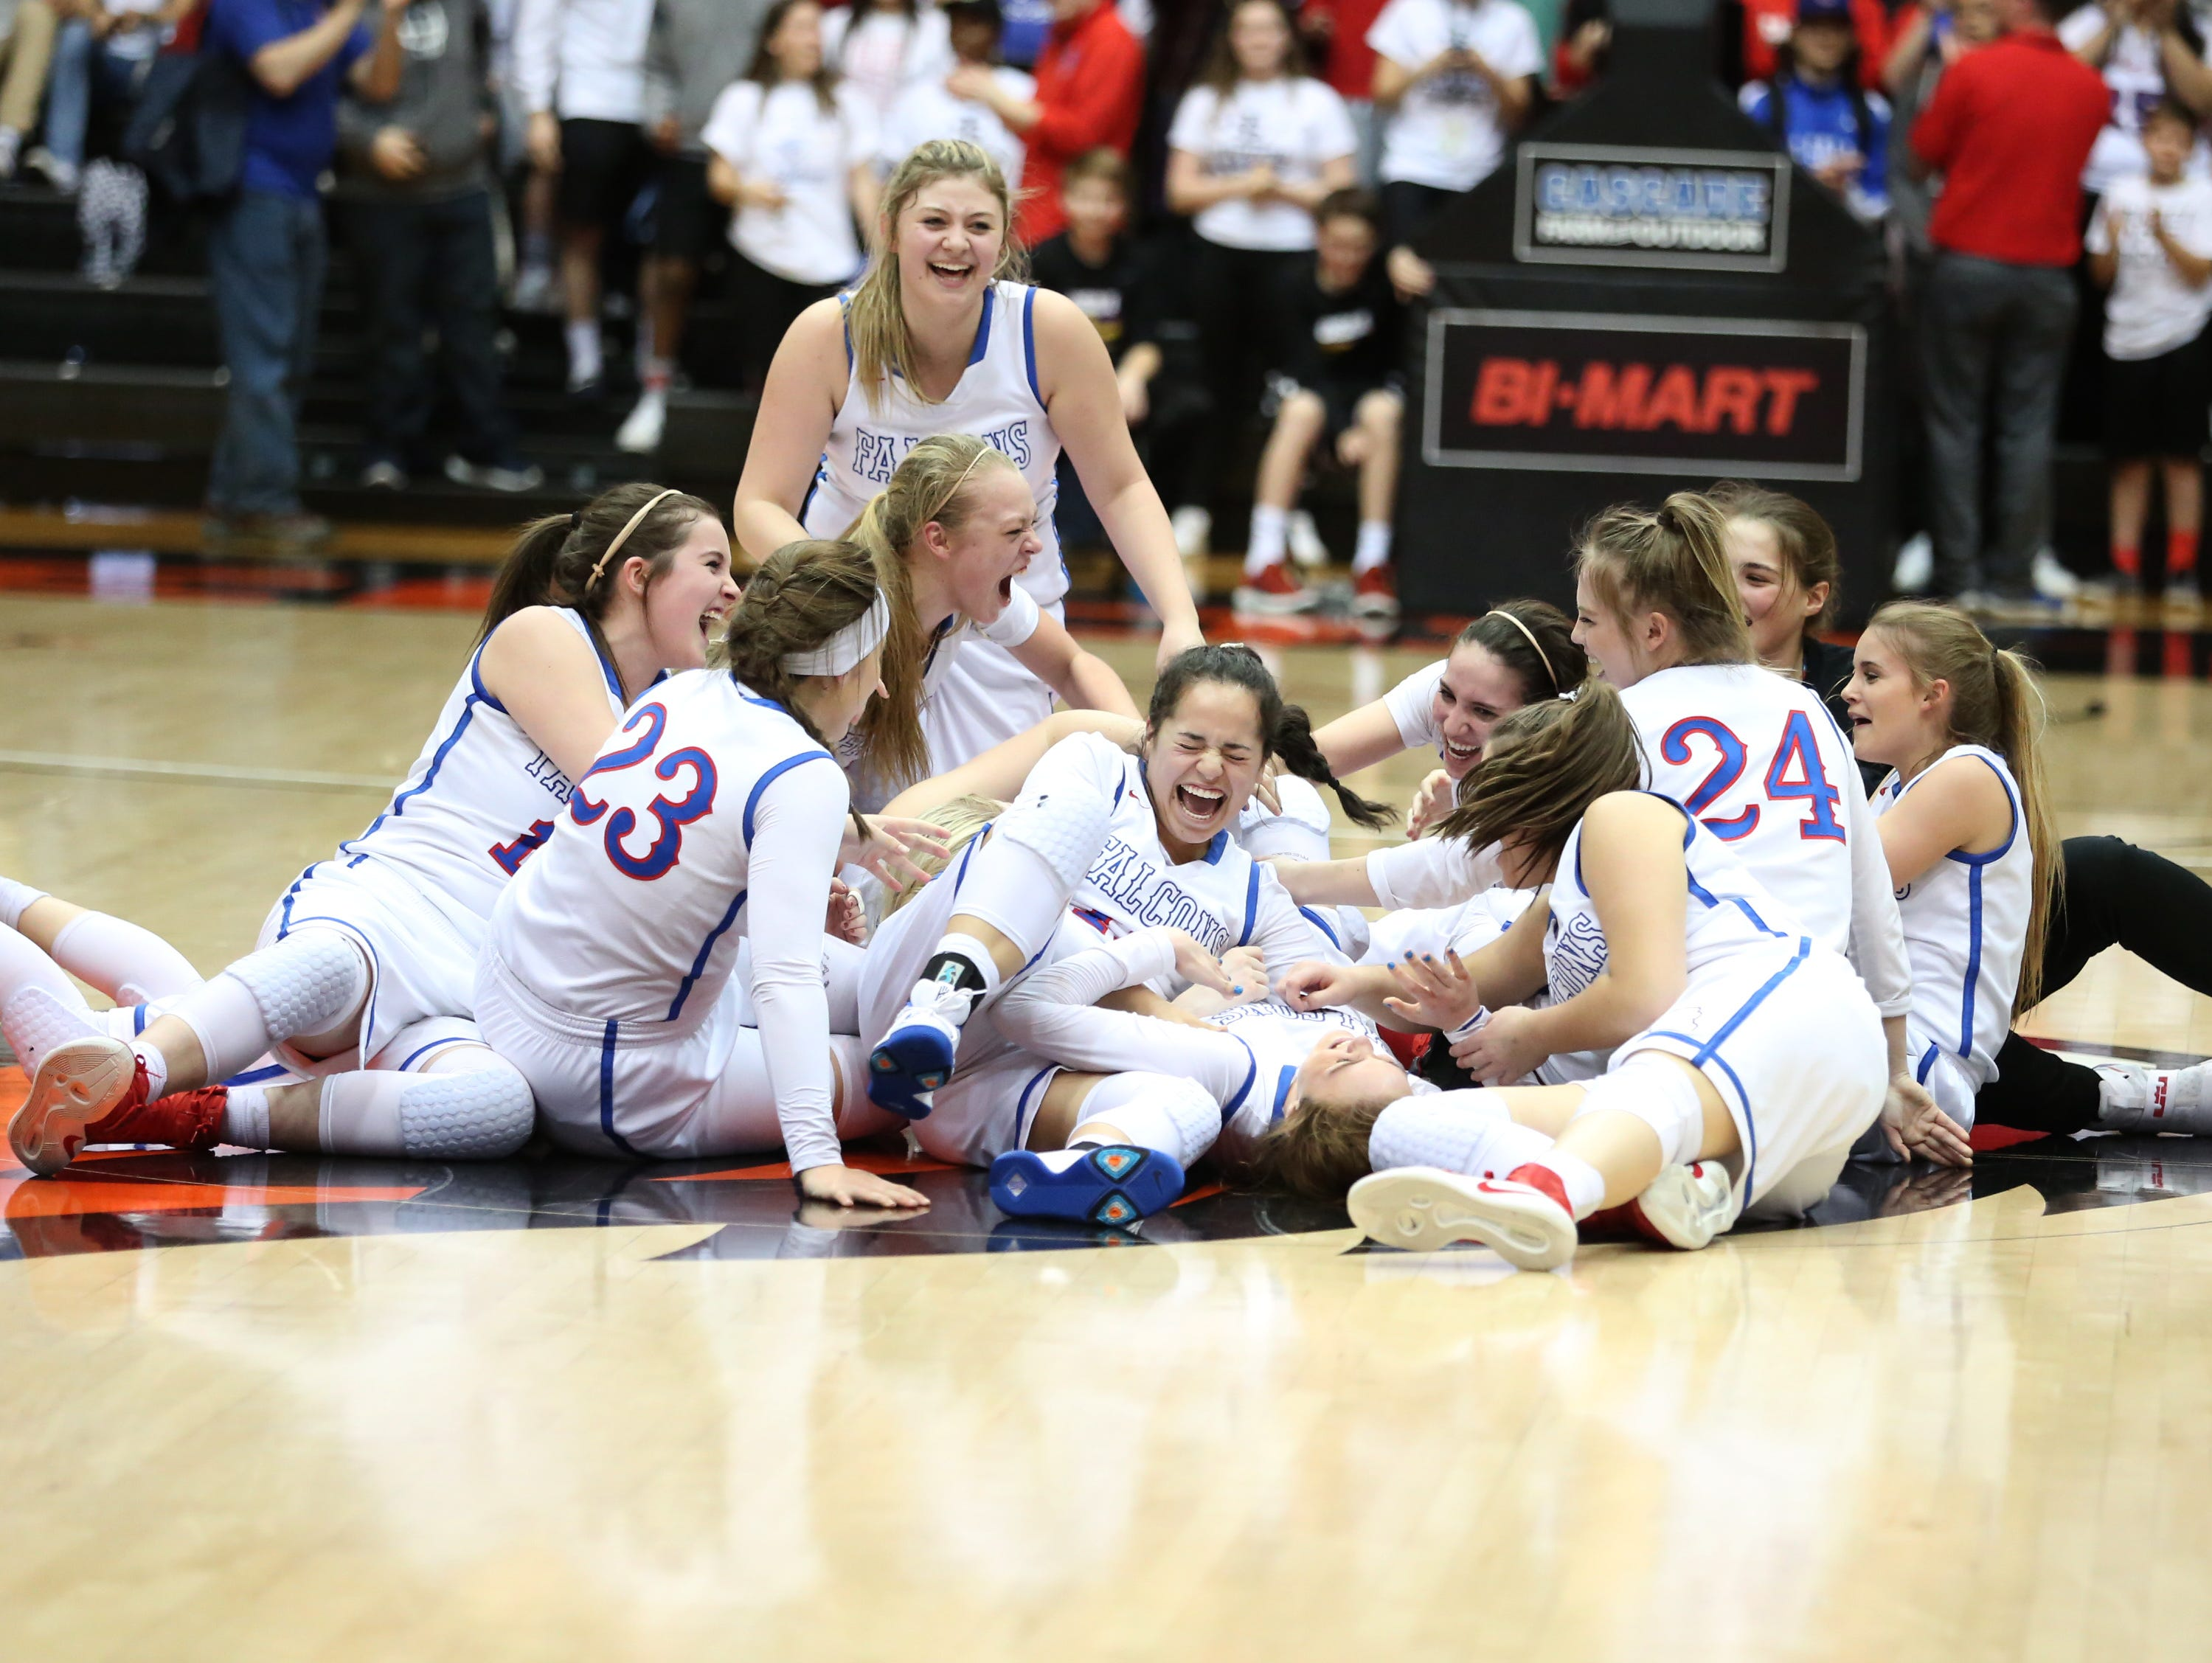 La Salle players celebrate their 42-28 victory over Silverton in the OSAA Class 5A state championship on Friday, March 10, 2017, at Gill Coliseum in Corvallis.